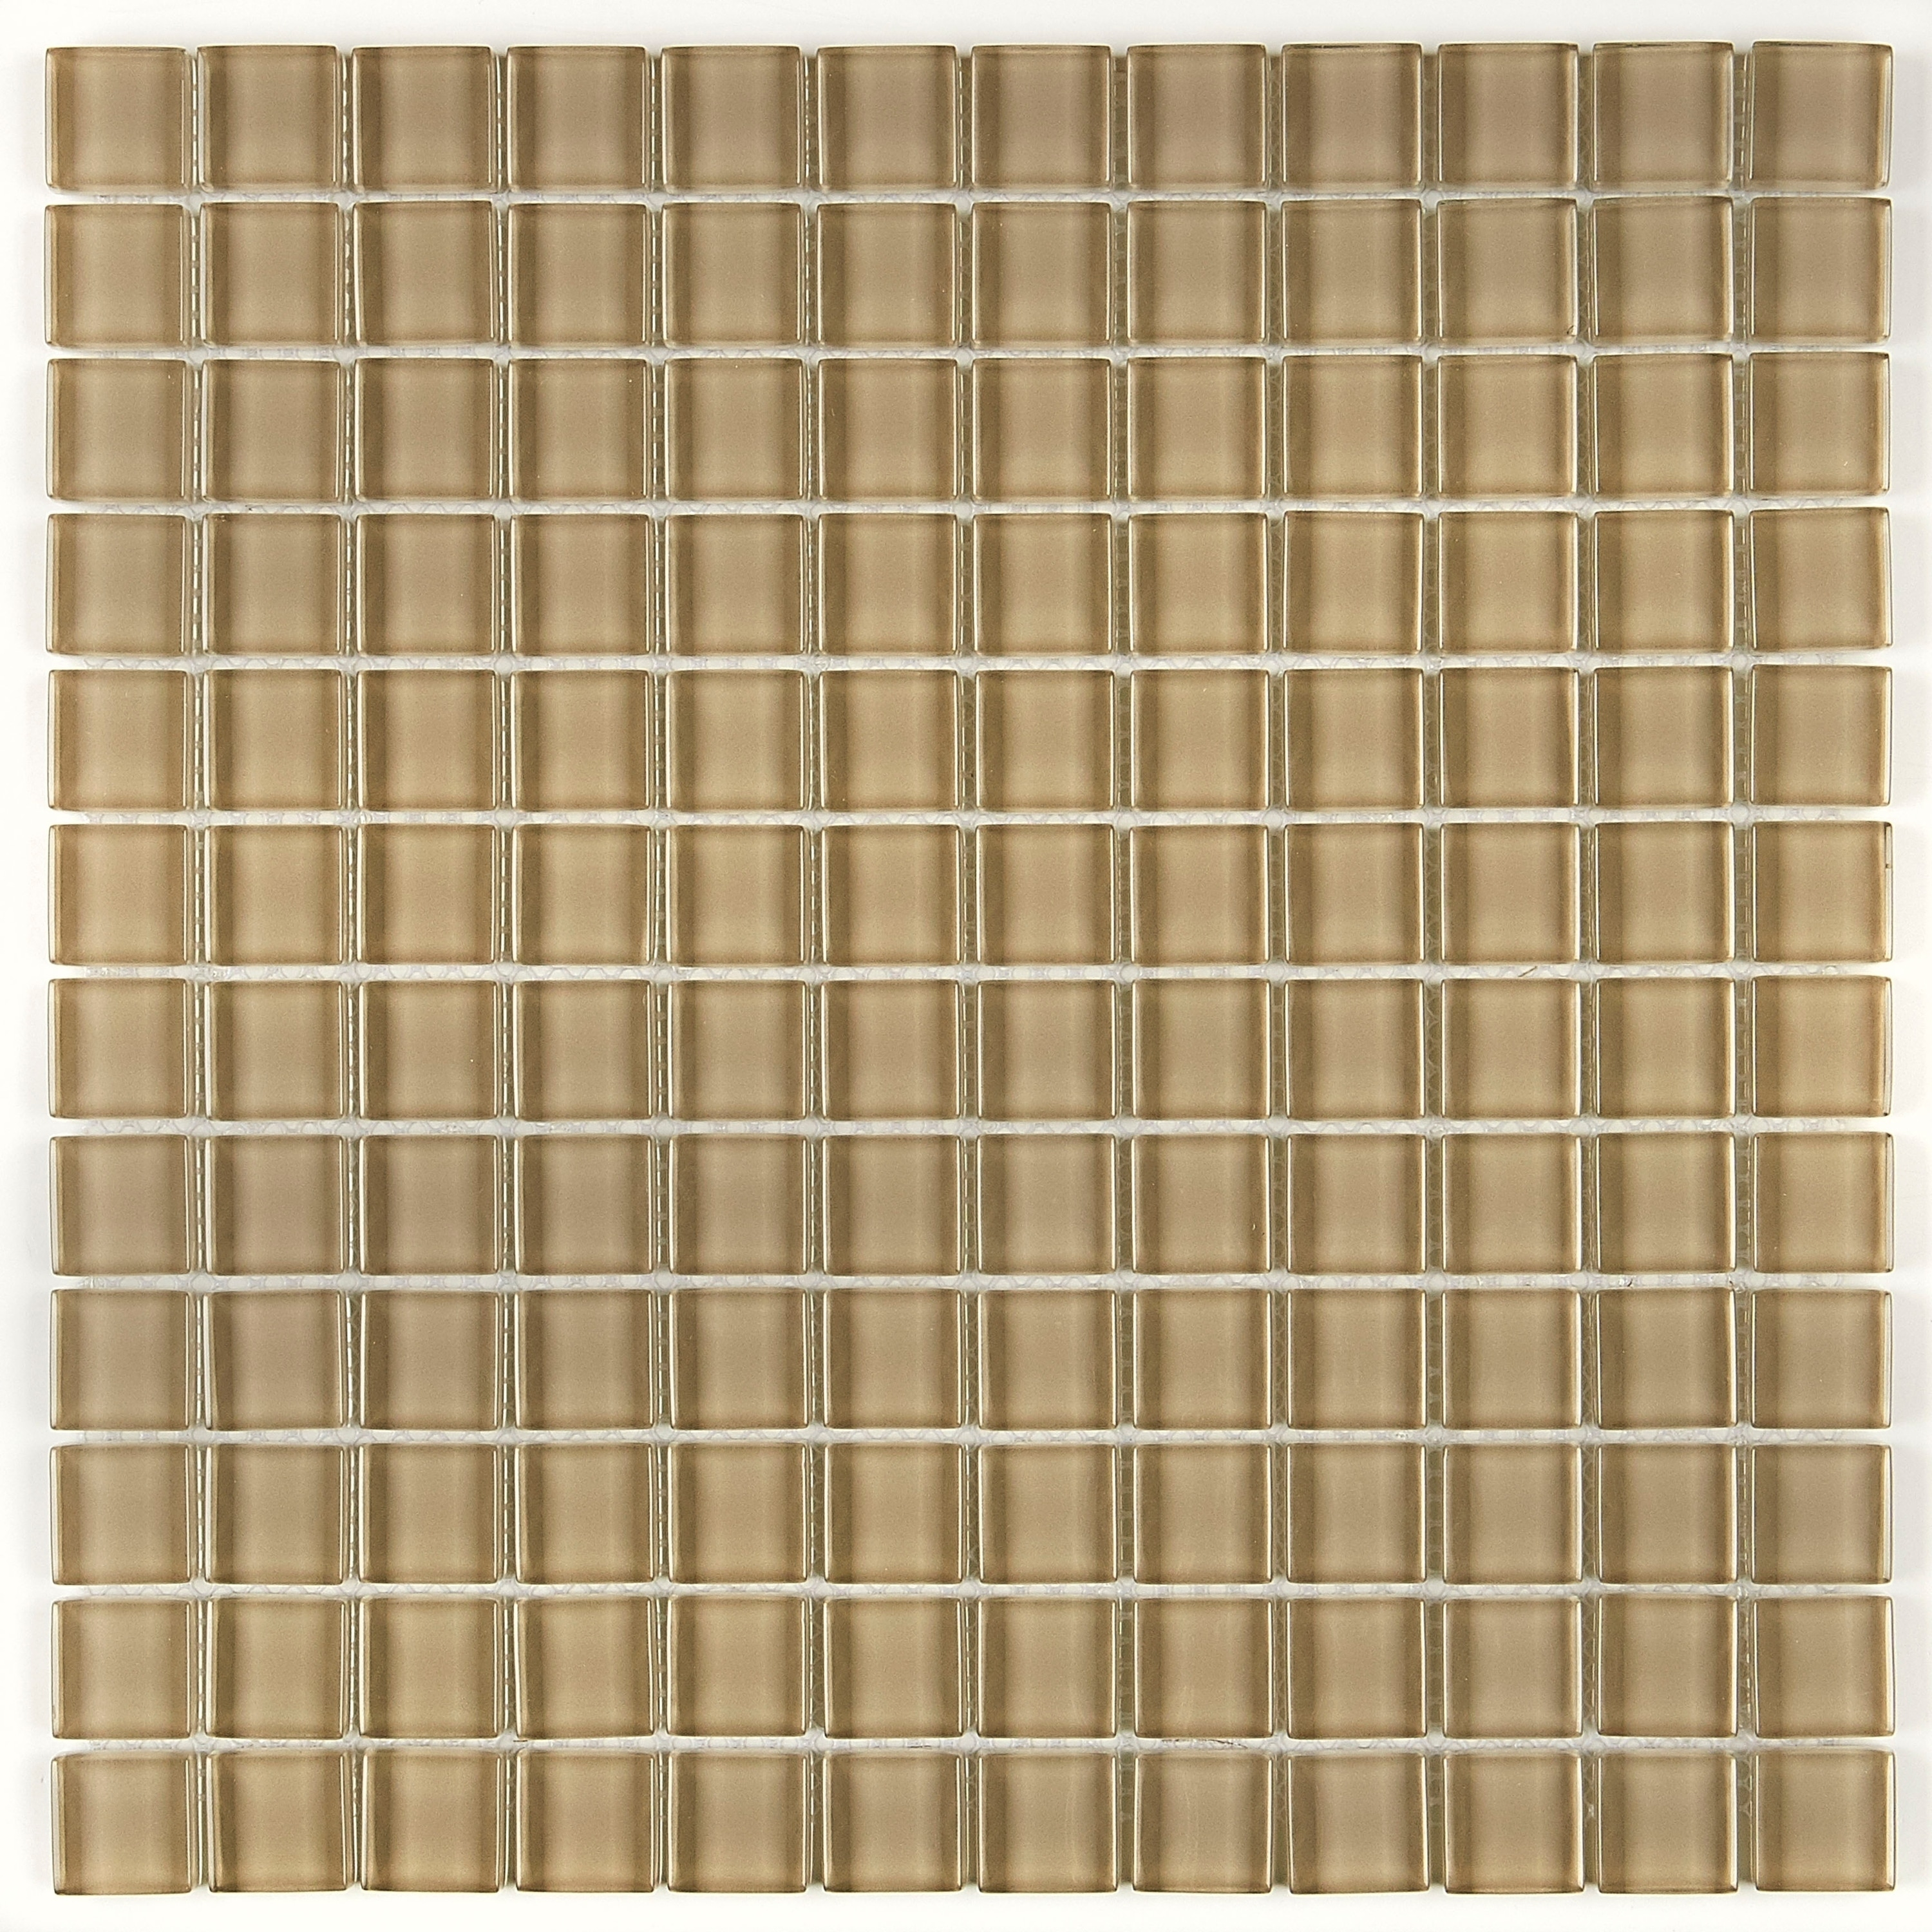 glass mosaic 1x1 inch accent tile in classic solid tango tan 12x12